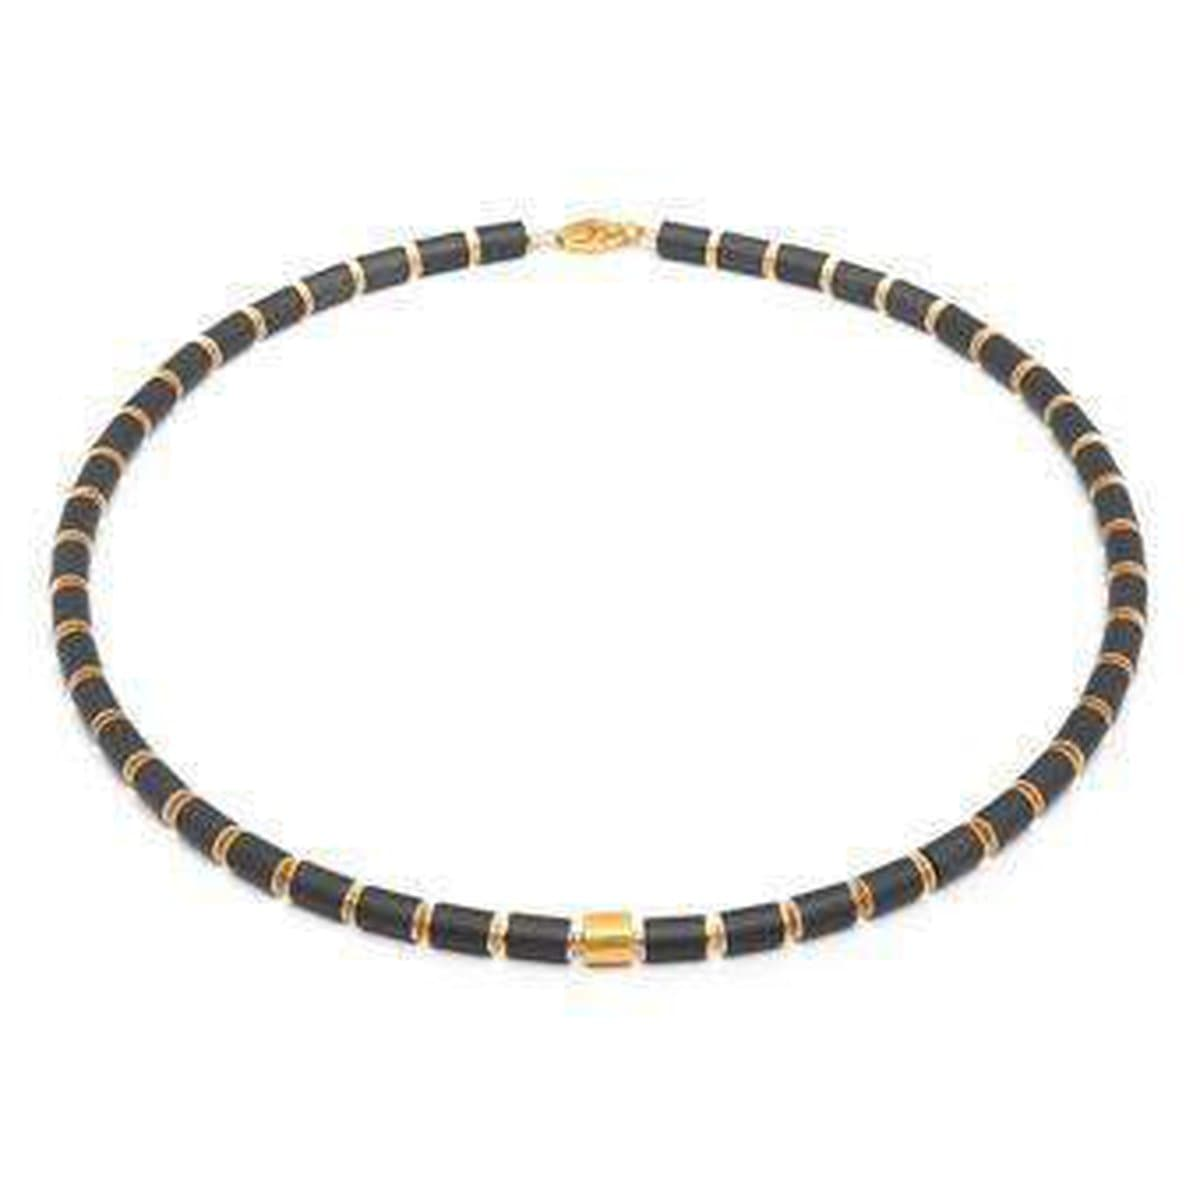 Wiruna Hematine Necklace - 84463276